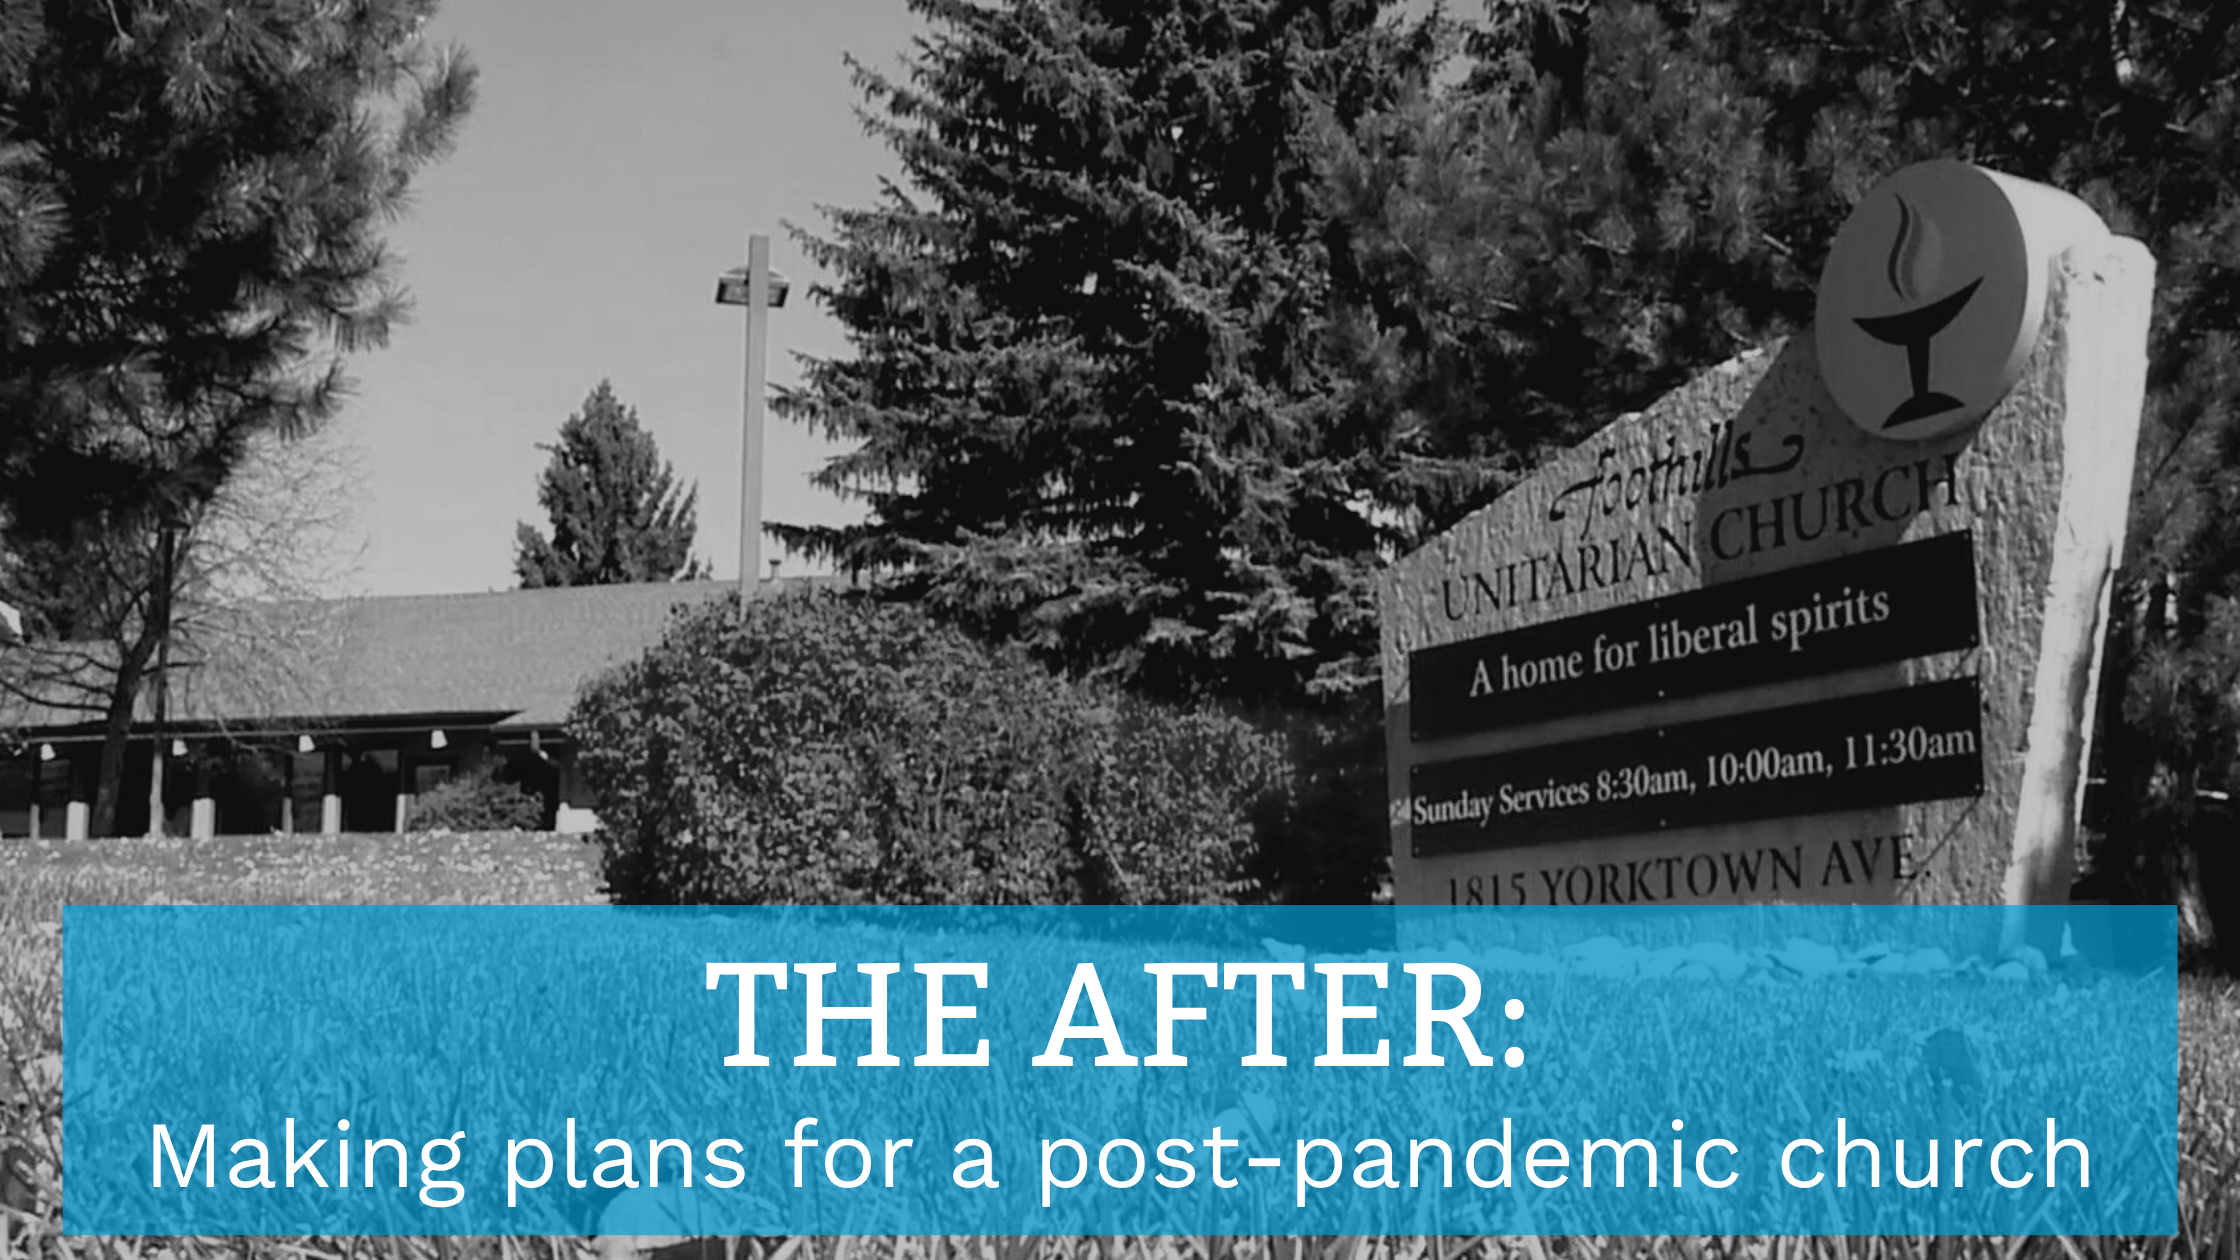 Update on Post-Pandemic Church Plans (April 2021)